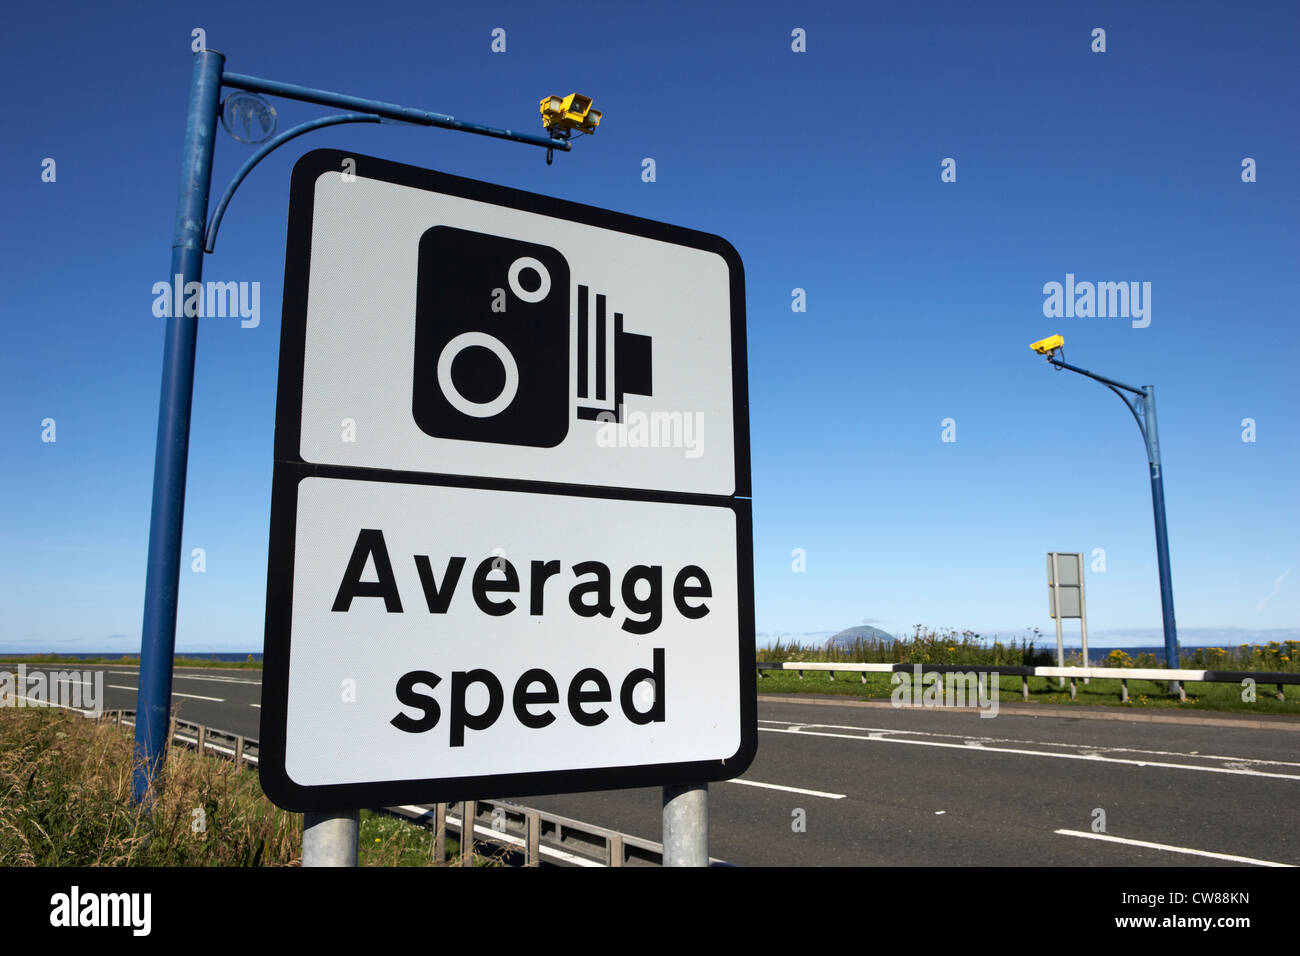 average speed road safety overhead traffic cameras and warning sign scotland uk united kingdom - Stock Image